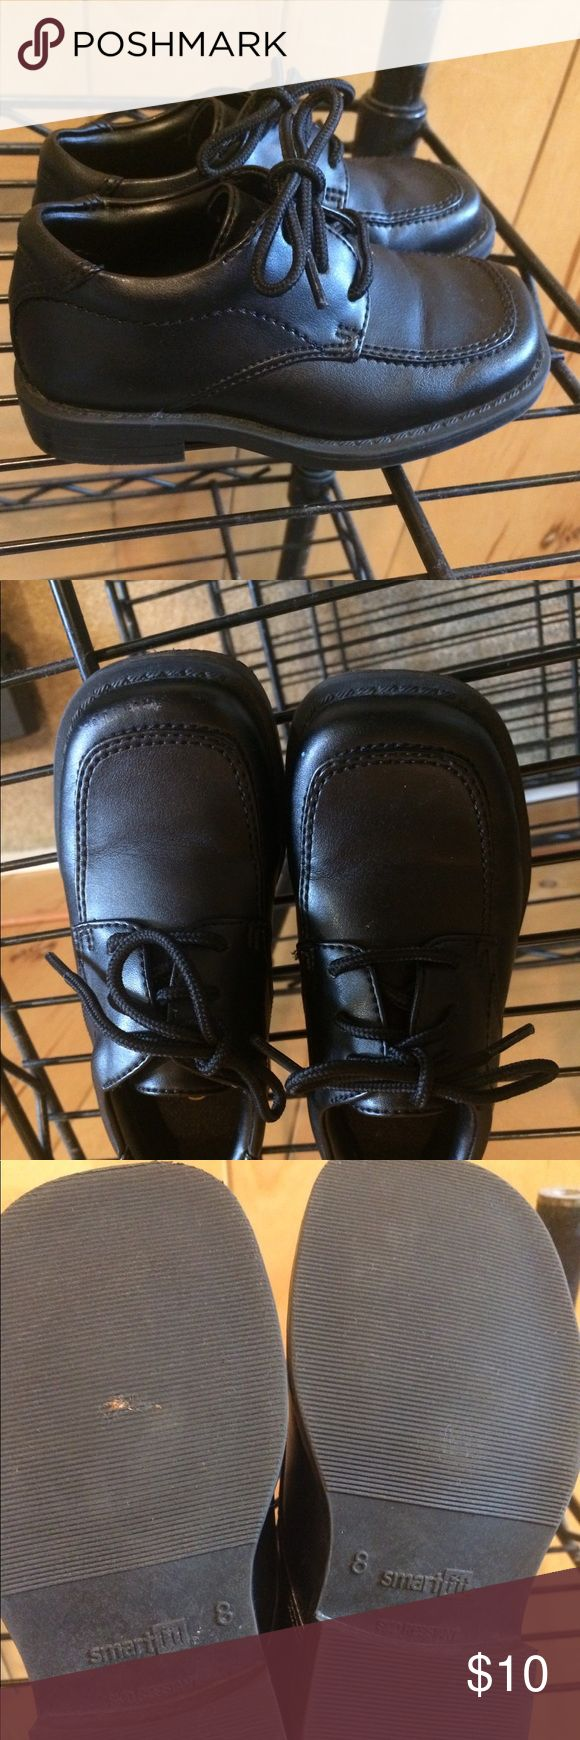 Boys black dress shoe size 8 Smart fit black size 8 boys dress shoe smart fit Shoes Dress Shoes